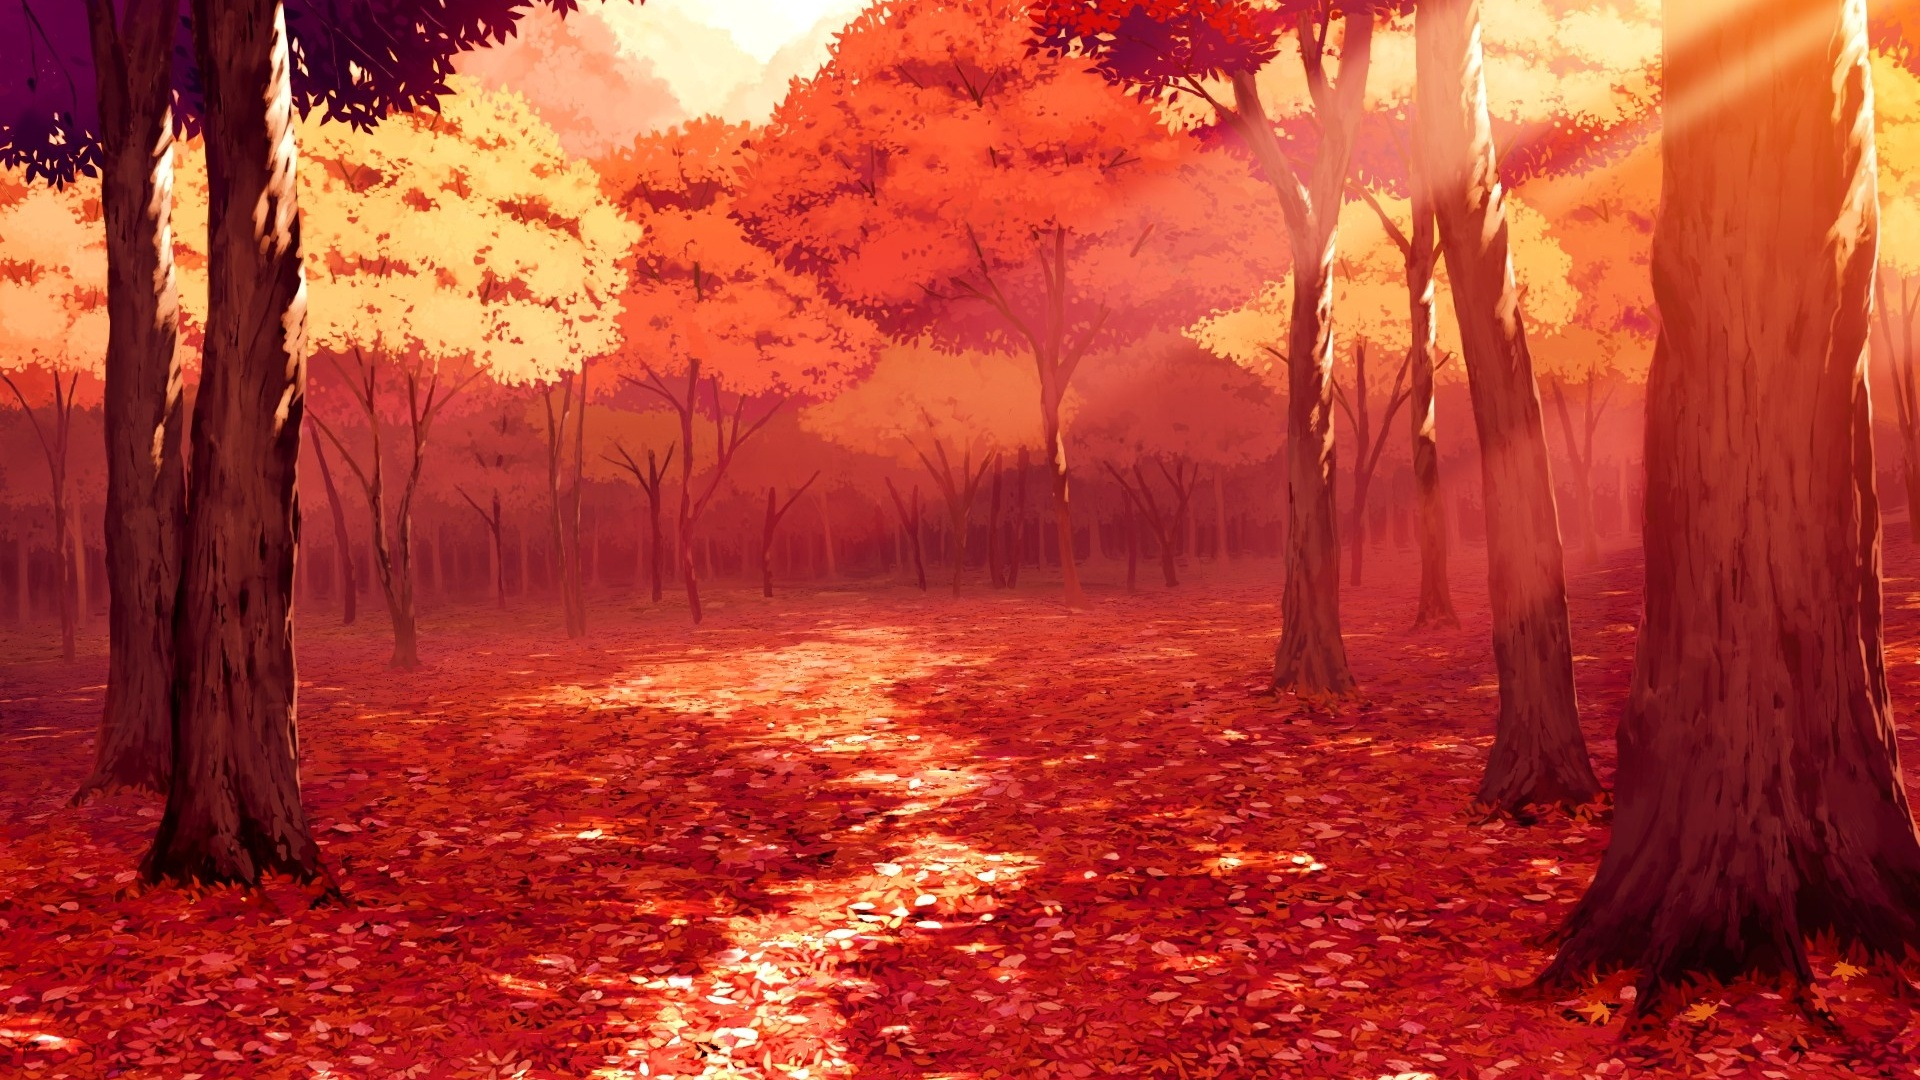 gorgeous anime scenery wallpaper 42590 1920x1080 px